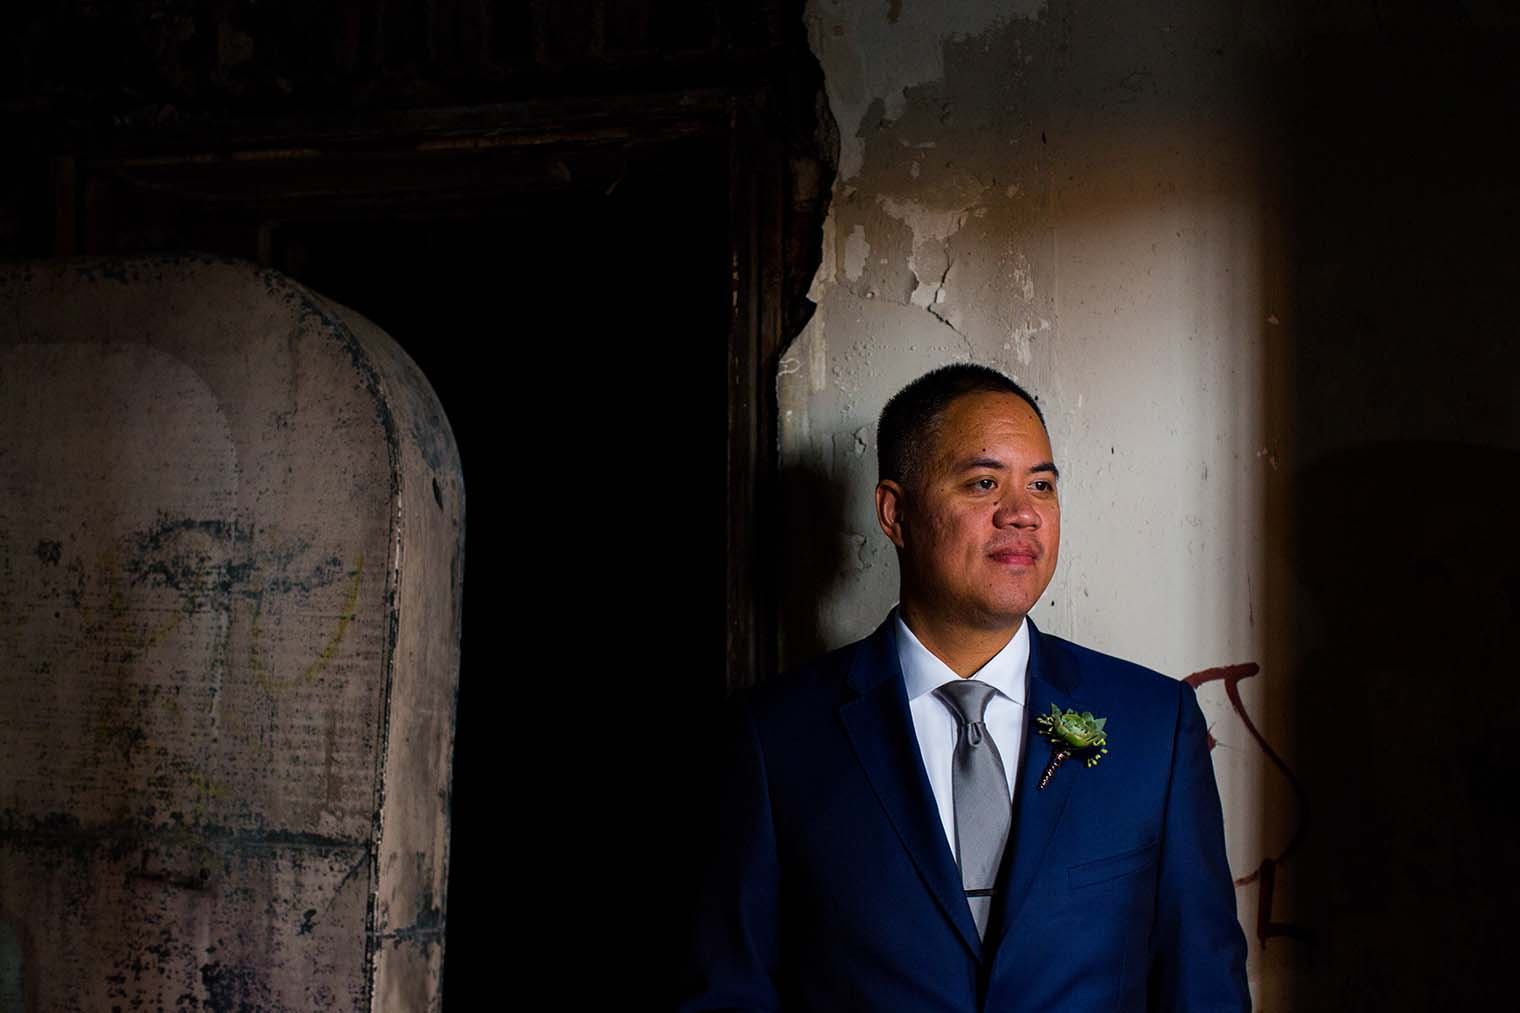 16th Street Station Wedding Portrait of Groom